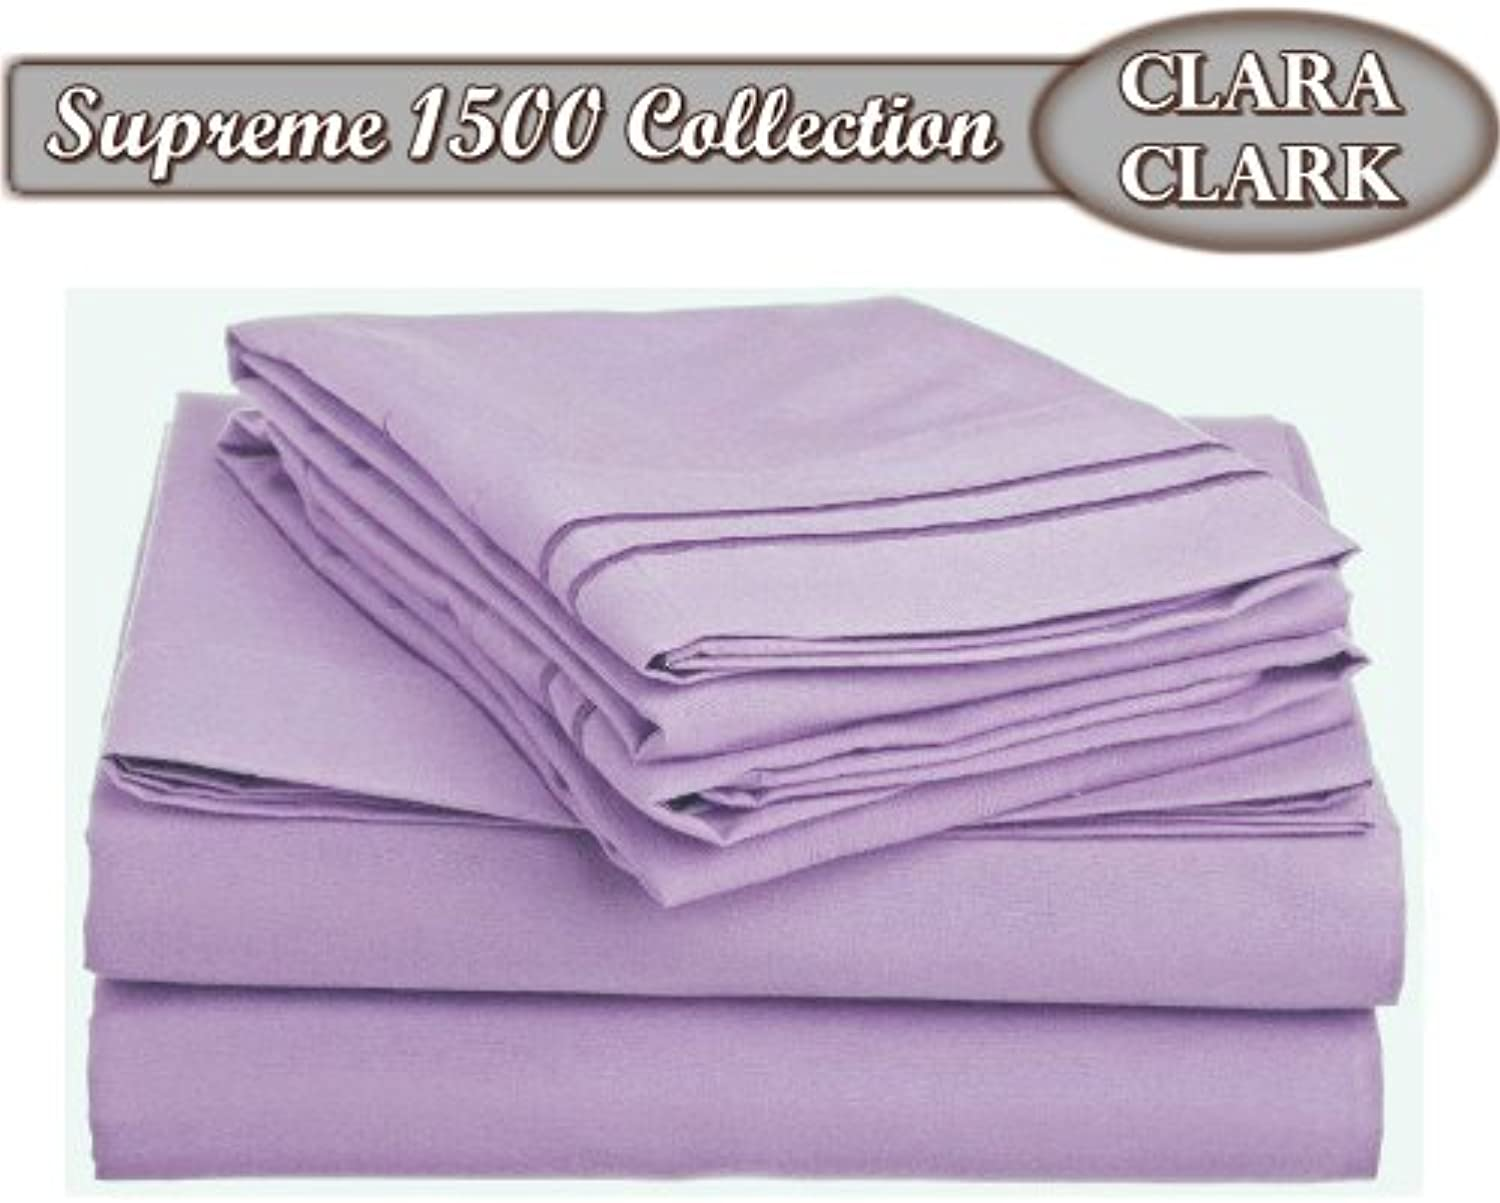 Clara Clark Supreme 1500 Collection 4pc Bed Sheet SetKing Size, Lavender